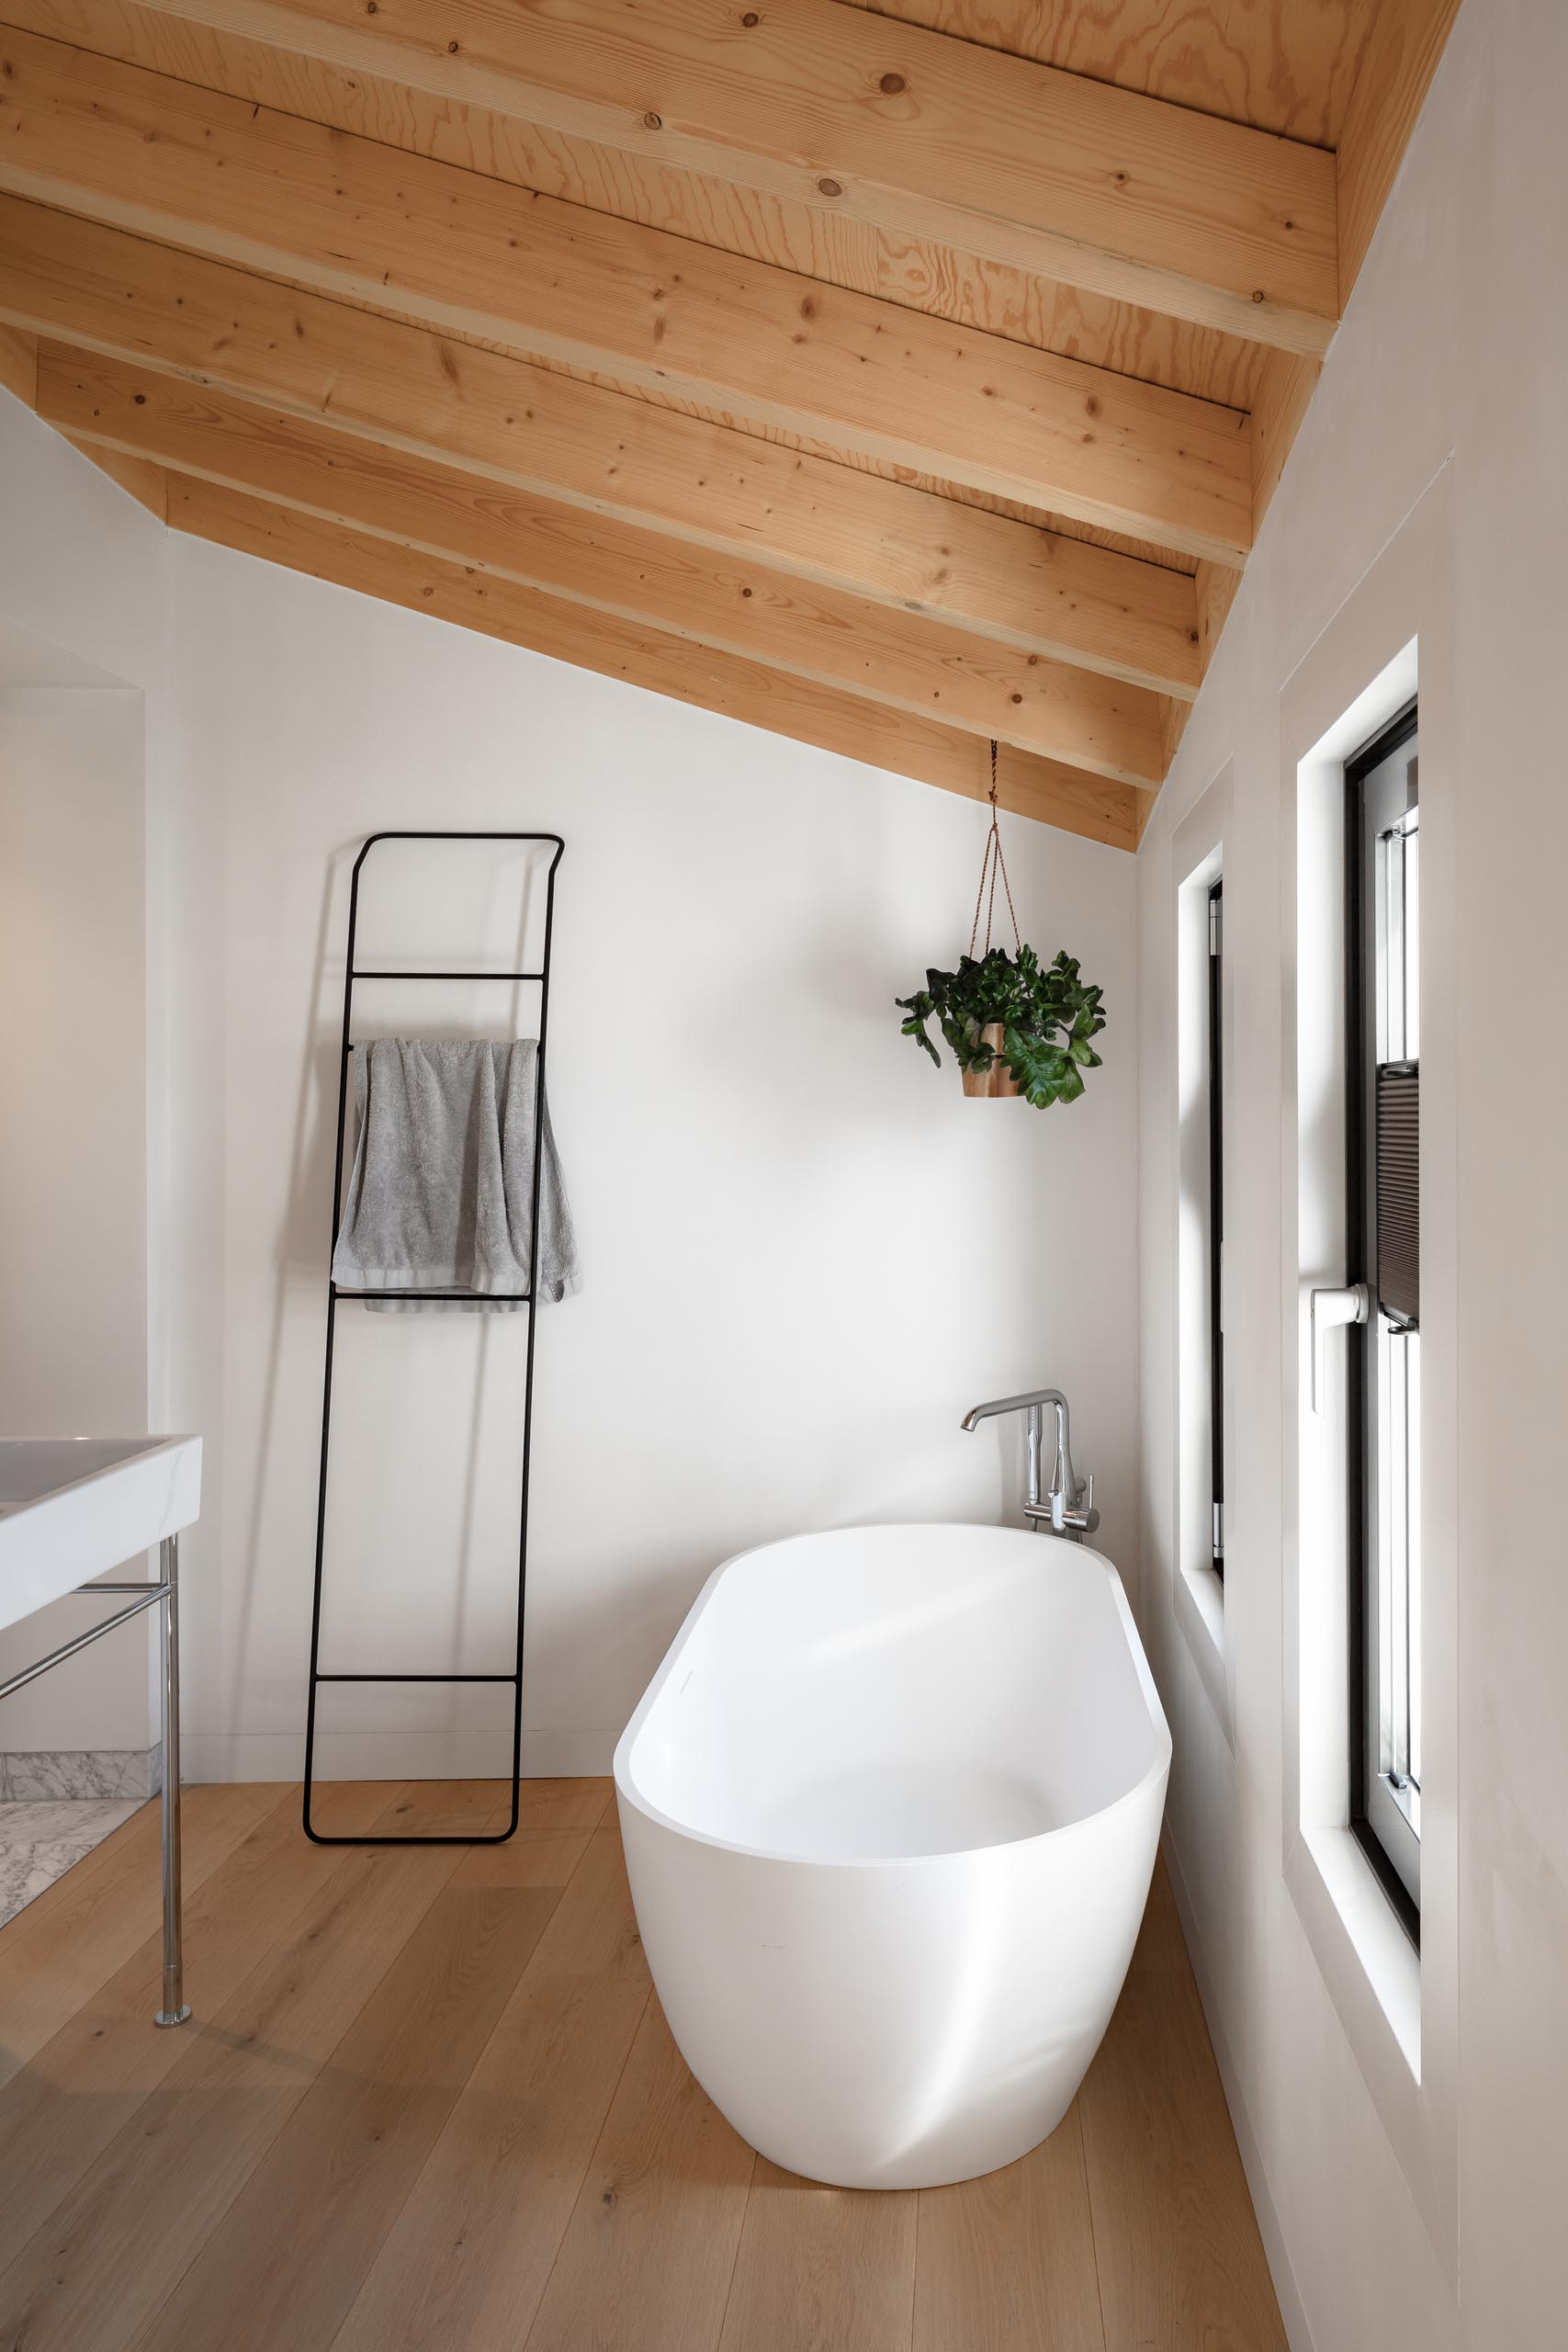 A modern bathroom with an  exposed wood ceiling that complements the wood floor, while the hanging planter in the corner adds a touch of nature.